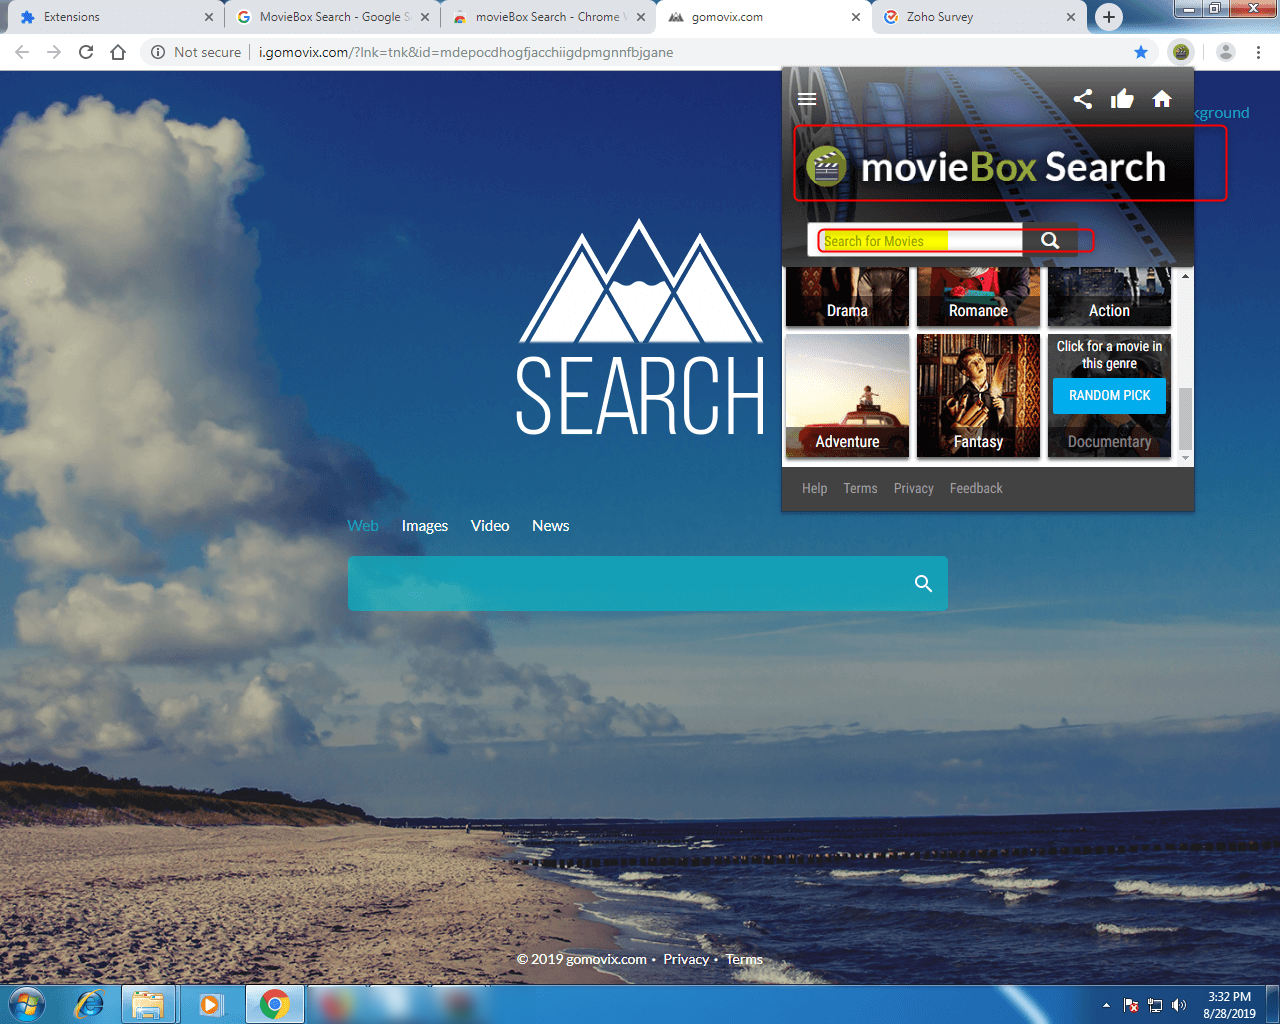 UI of MovieBox Search 1